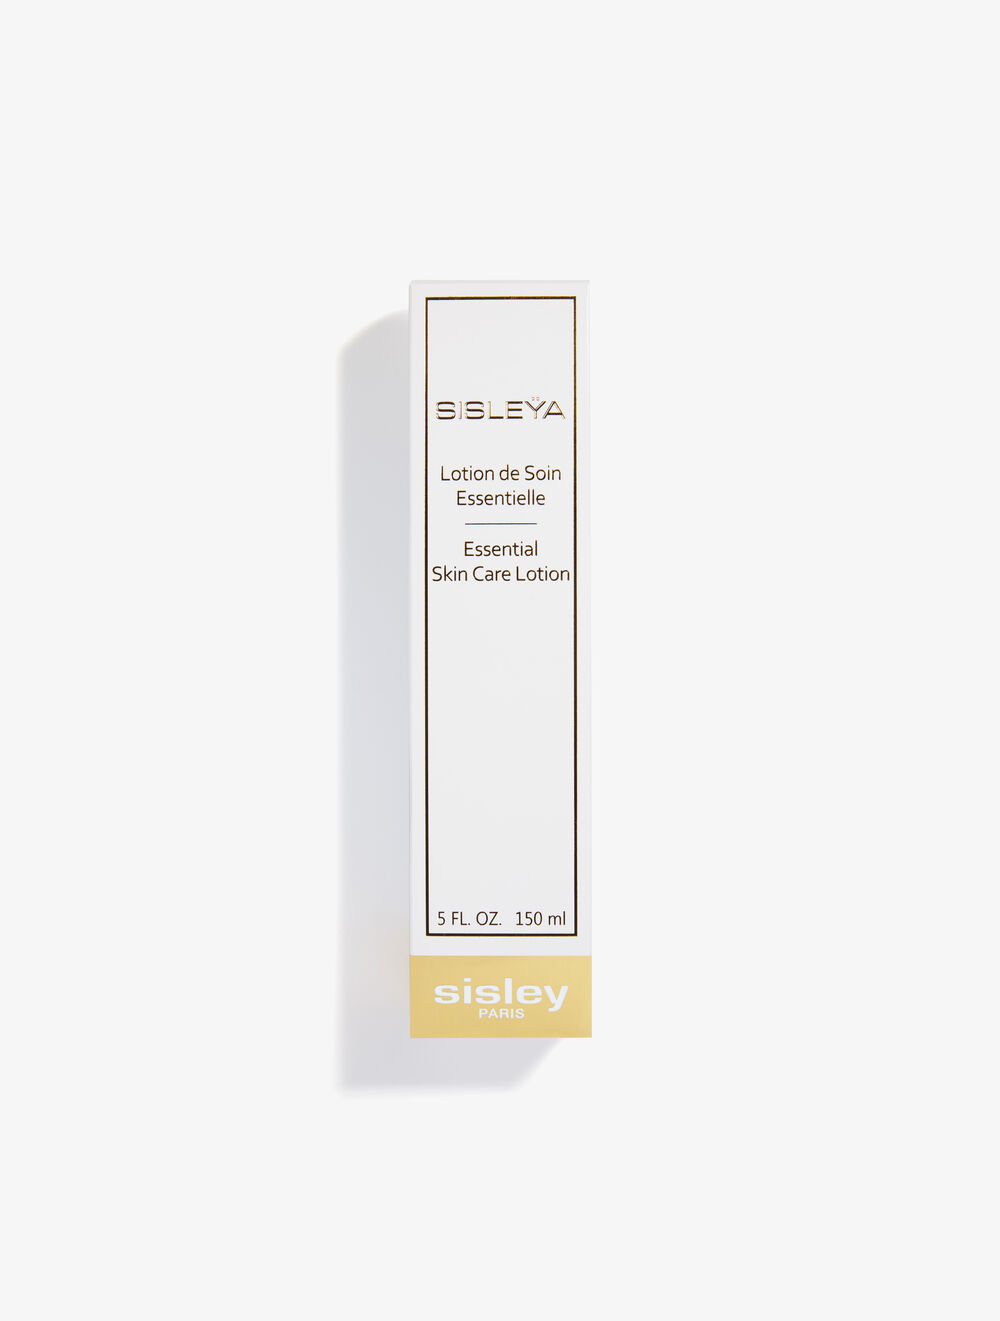 Sisleÿa Essential Skin Care Lotion